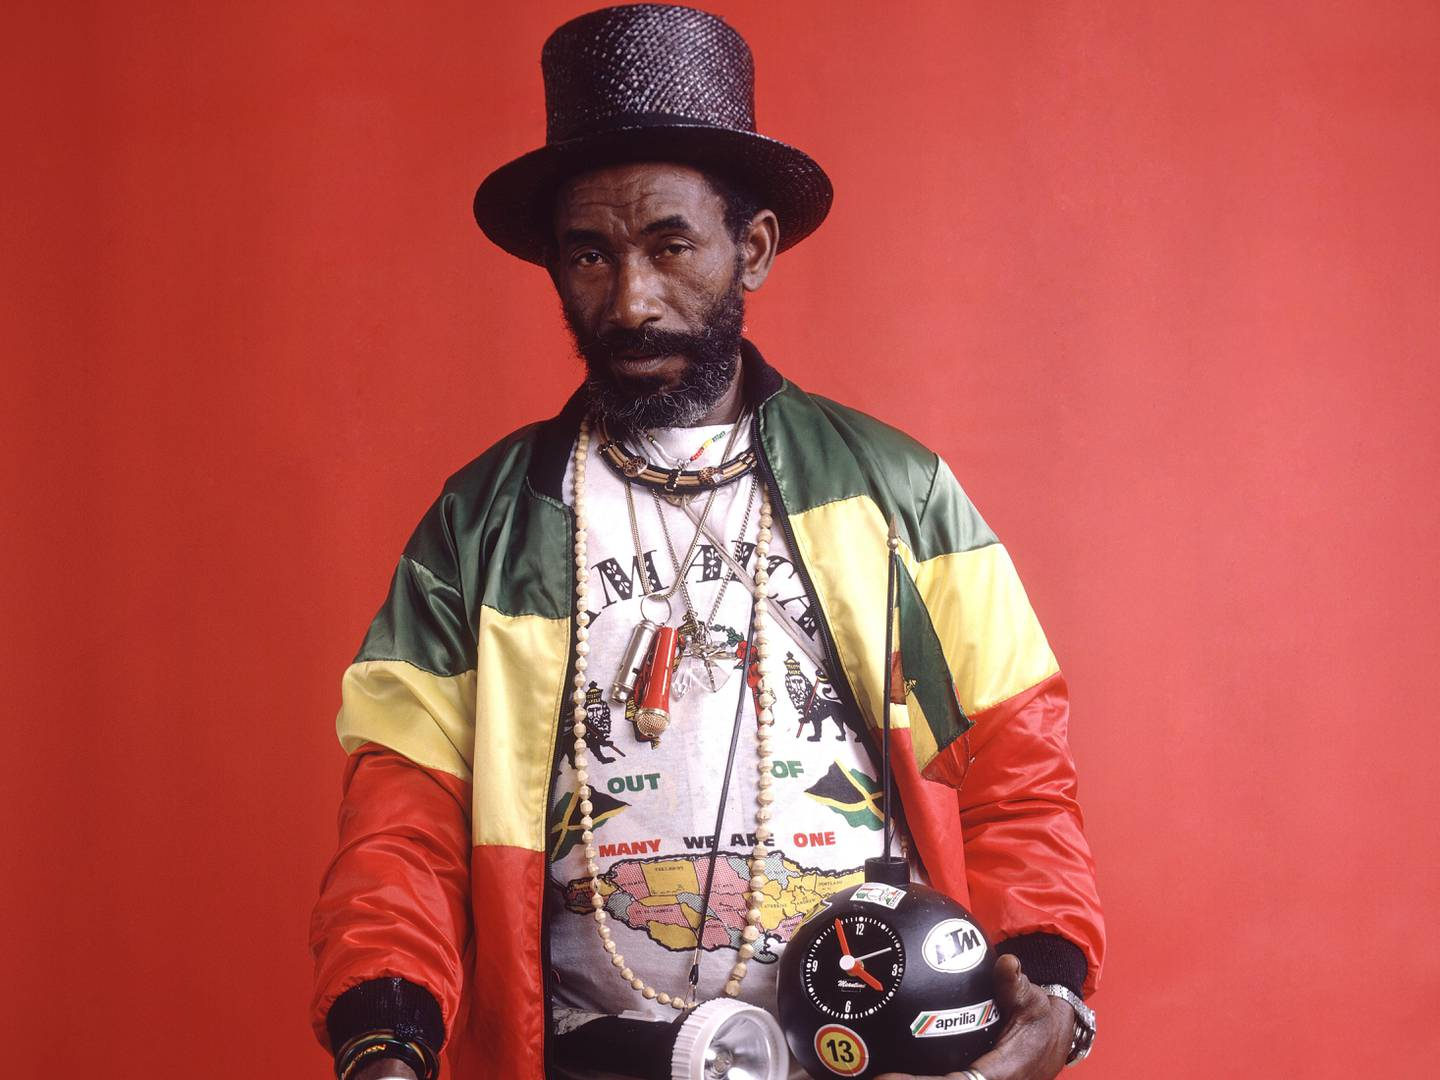 Mandatory Credit: Photo by Bleddyn Butcher / Rex Features ( 206078cg ) Lee Scratch Perry Various - 1985